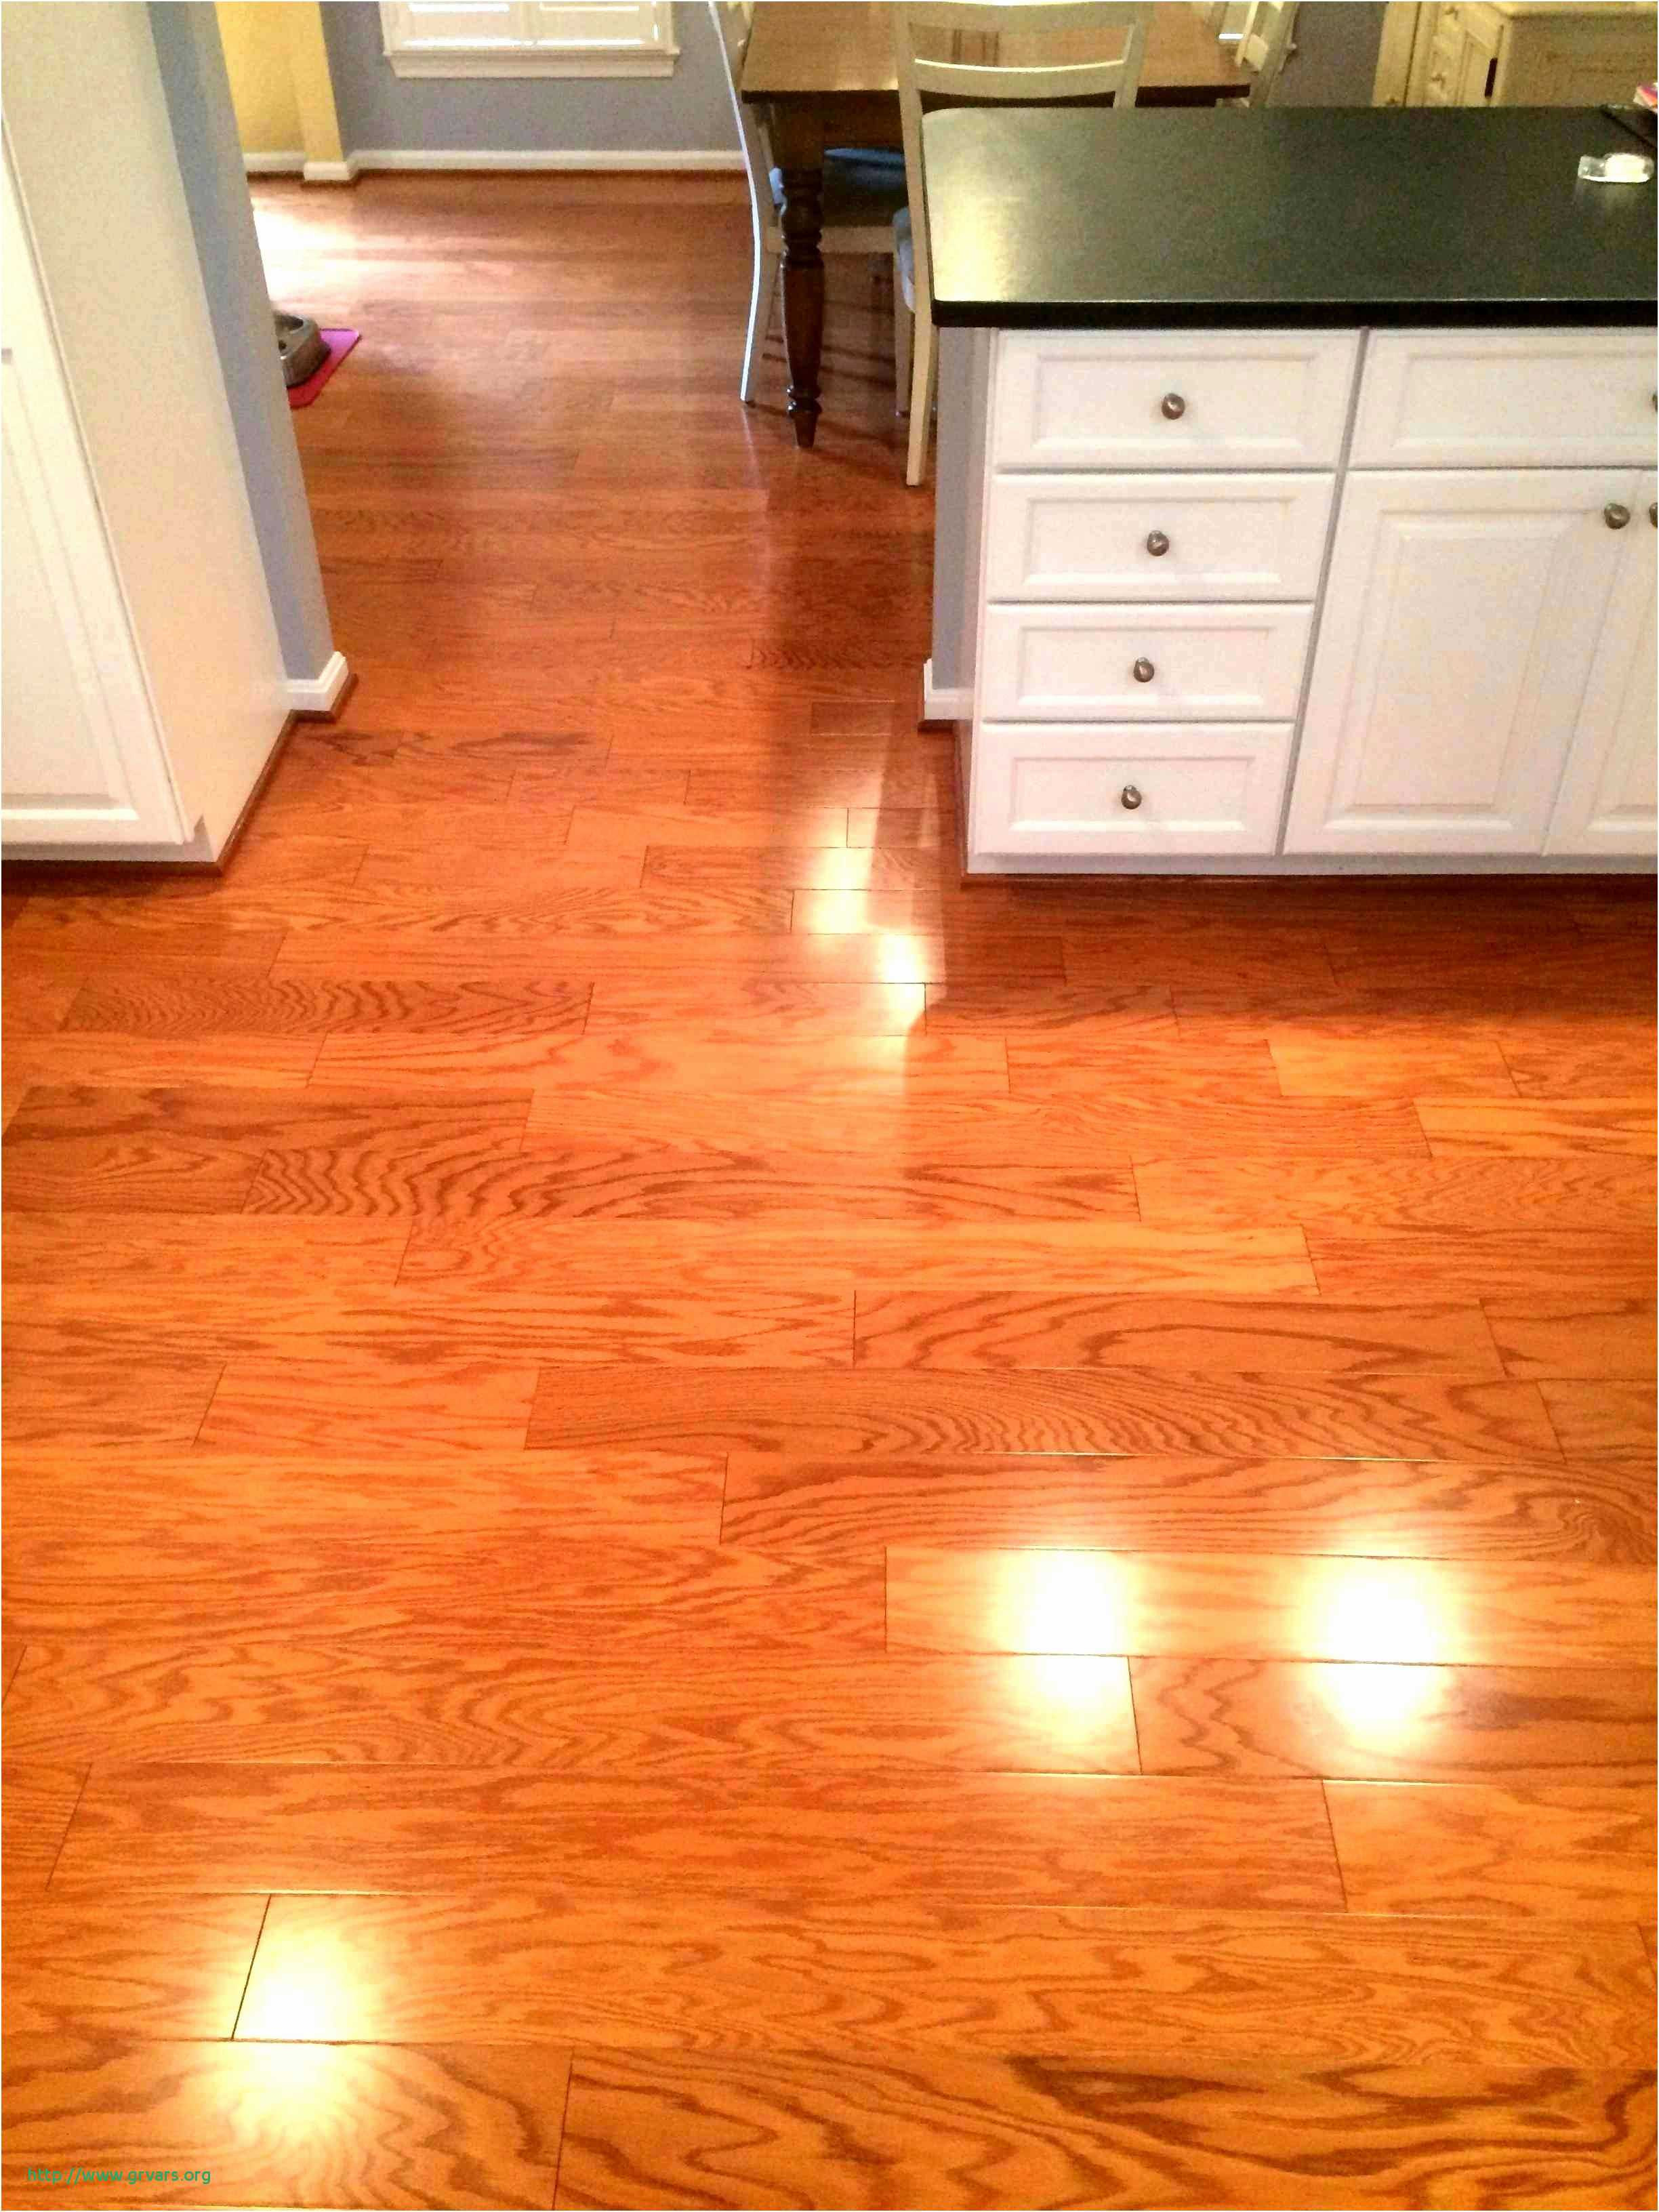 27 Best Floating Hardwood Floor Installation 2021 free download floating hardwood floor installation of 16 charmant step by step hardwood floor installation ideas blog within 16 photos of the 16 charmant step by step hardwood floor installation